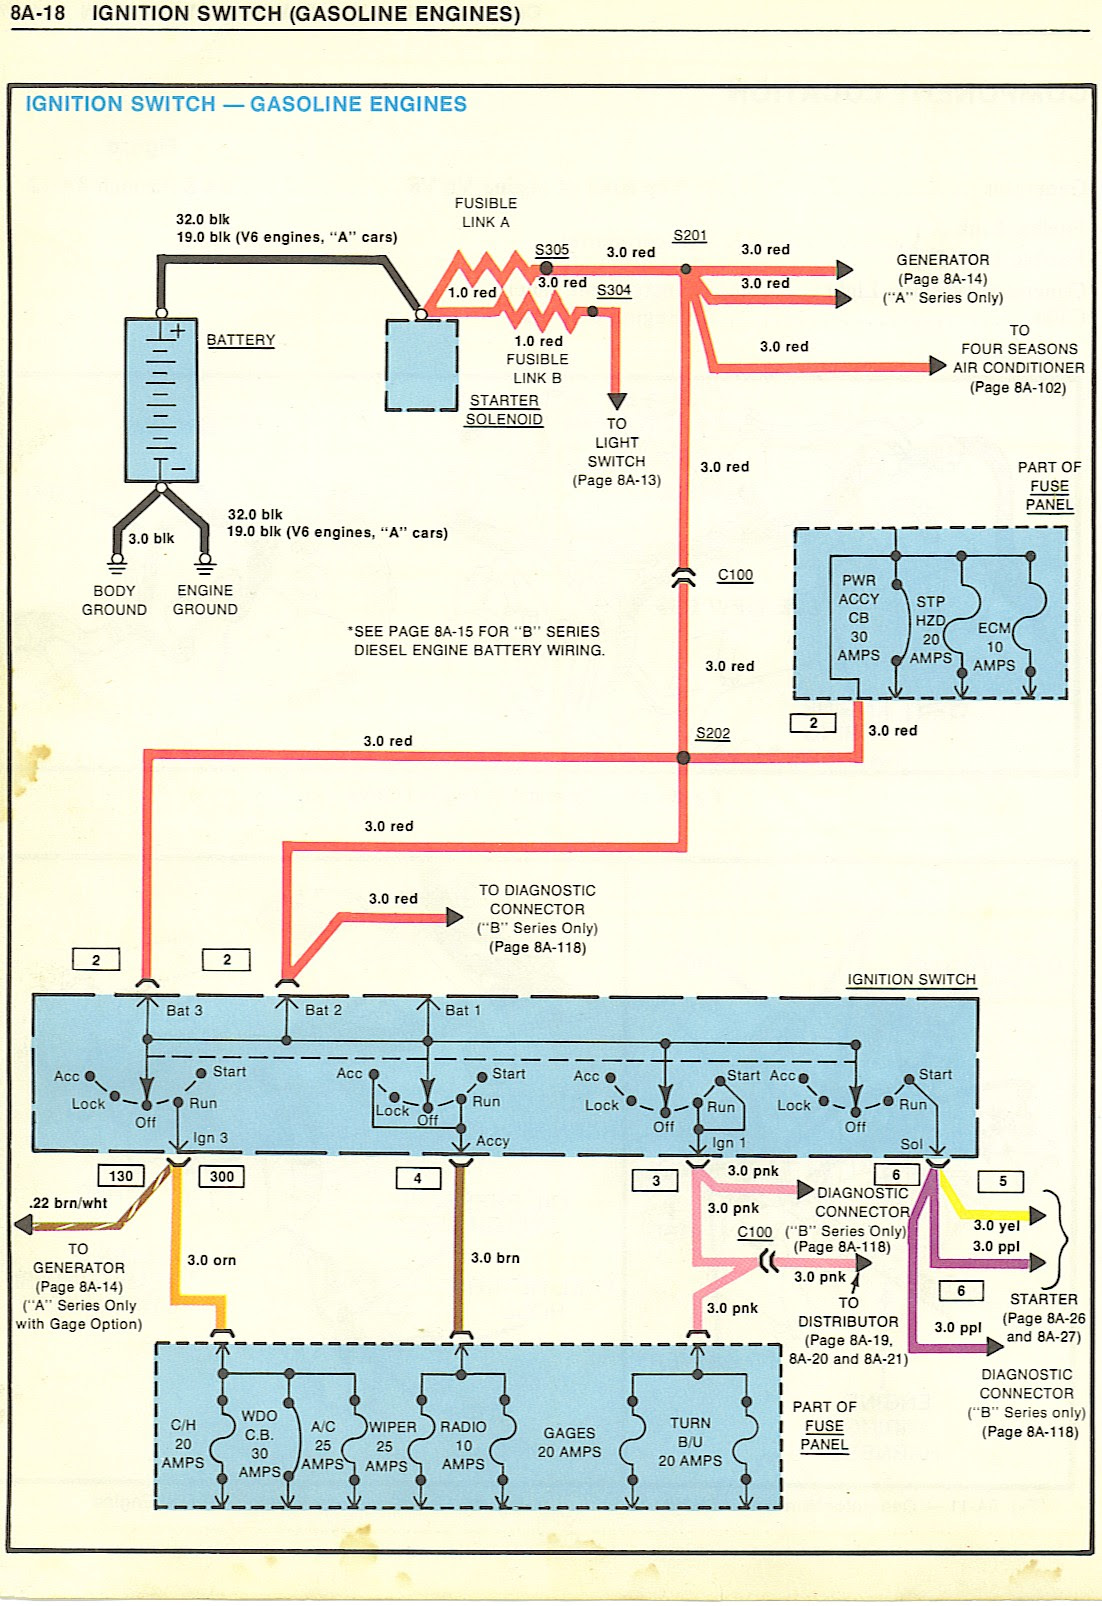 1969 Camaro Ignition Switch Wiring Diagram Wiring Diagram Enter Enter Lechicchedimammavale It